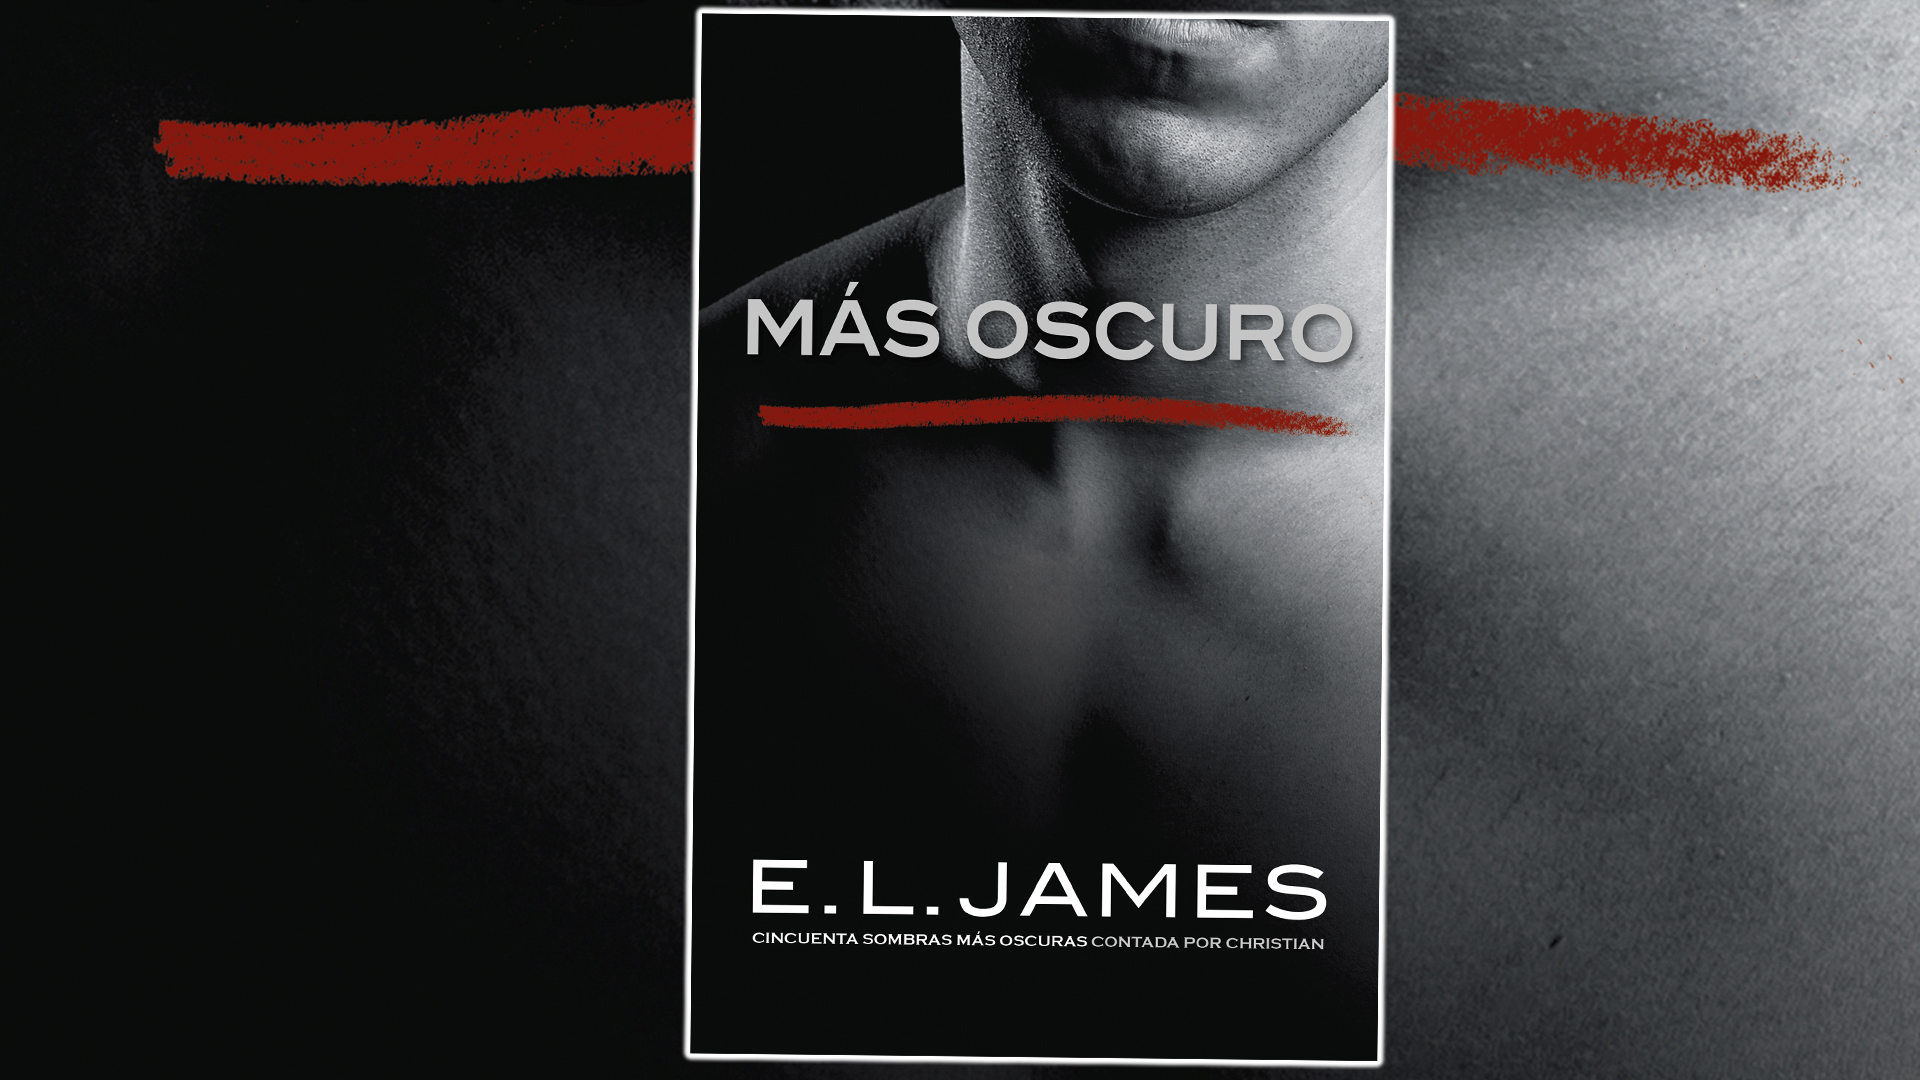 Saga 50 Sombras De Grey Libros Regresa Christian Grey Y E L James Con Más Oscuro